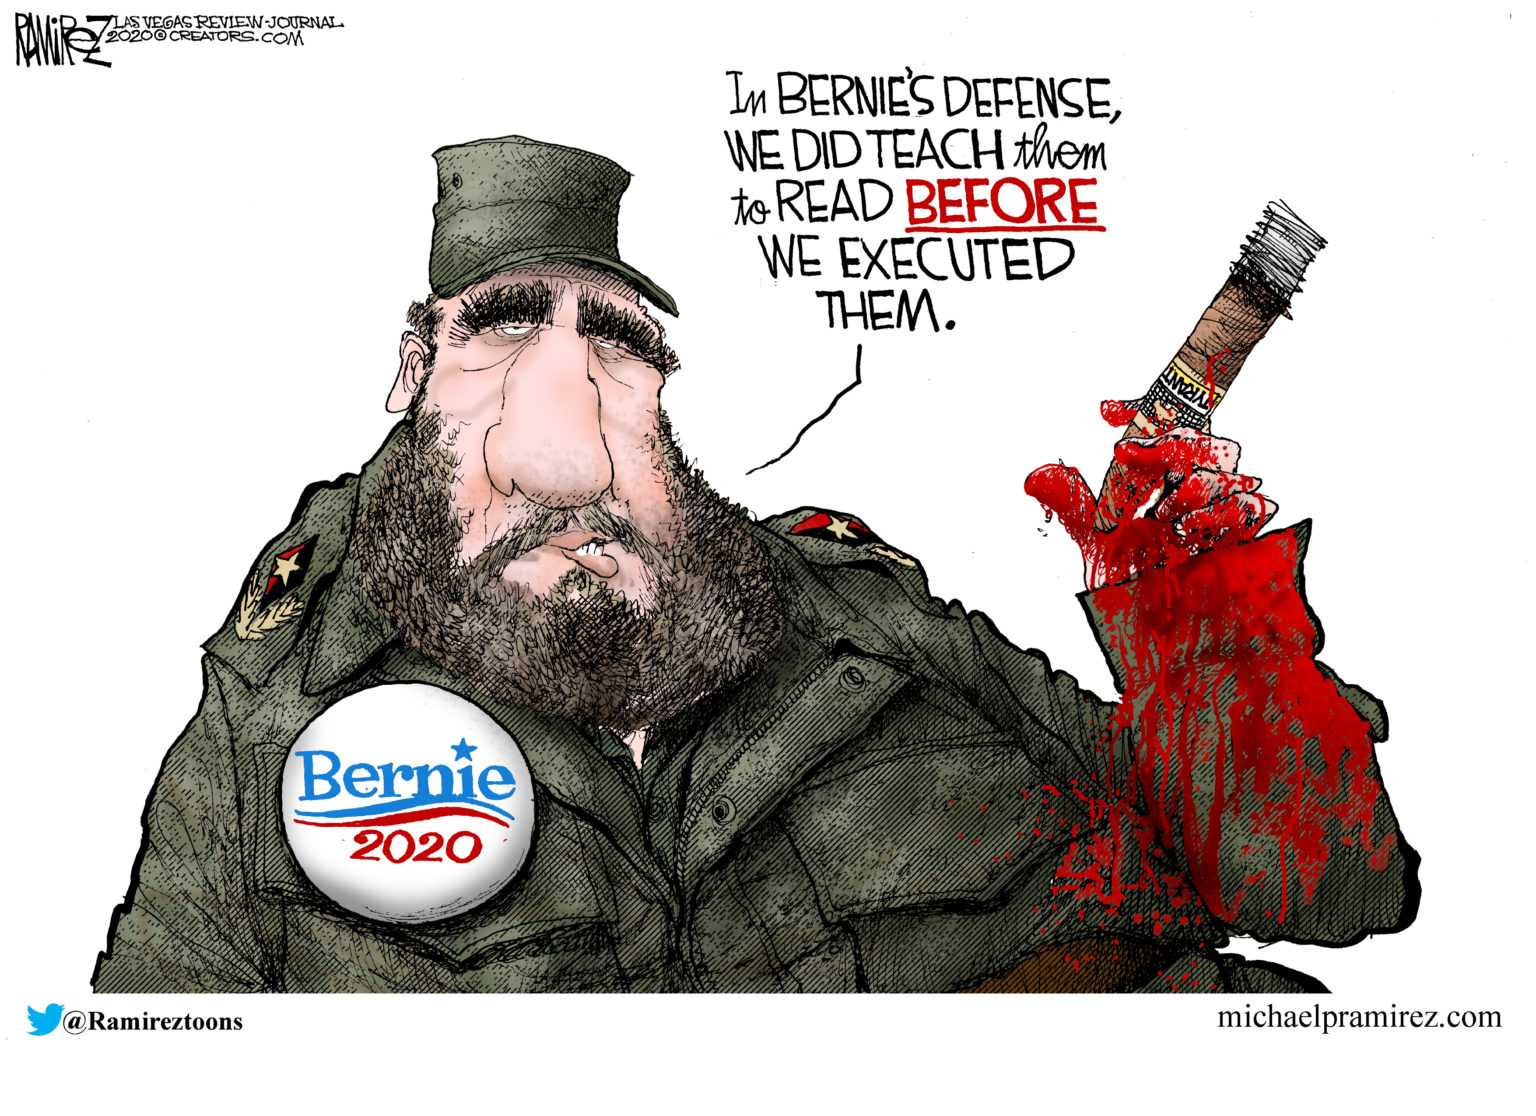 """Castro wearing a Bernie 2020 button saying, """"In Bernie's Defense we did teach them to read before we executed them."""""""